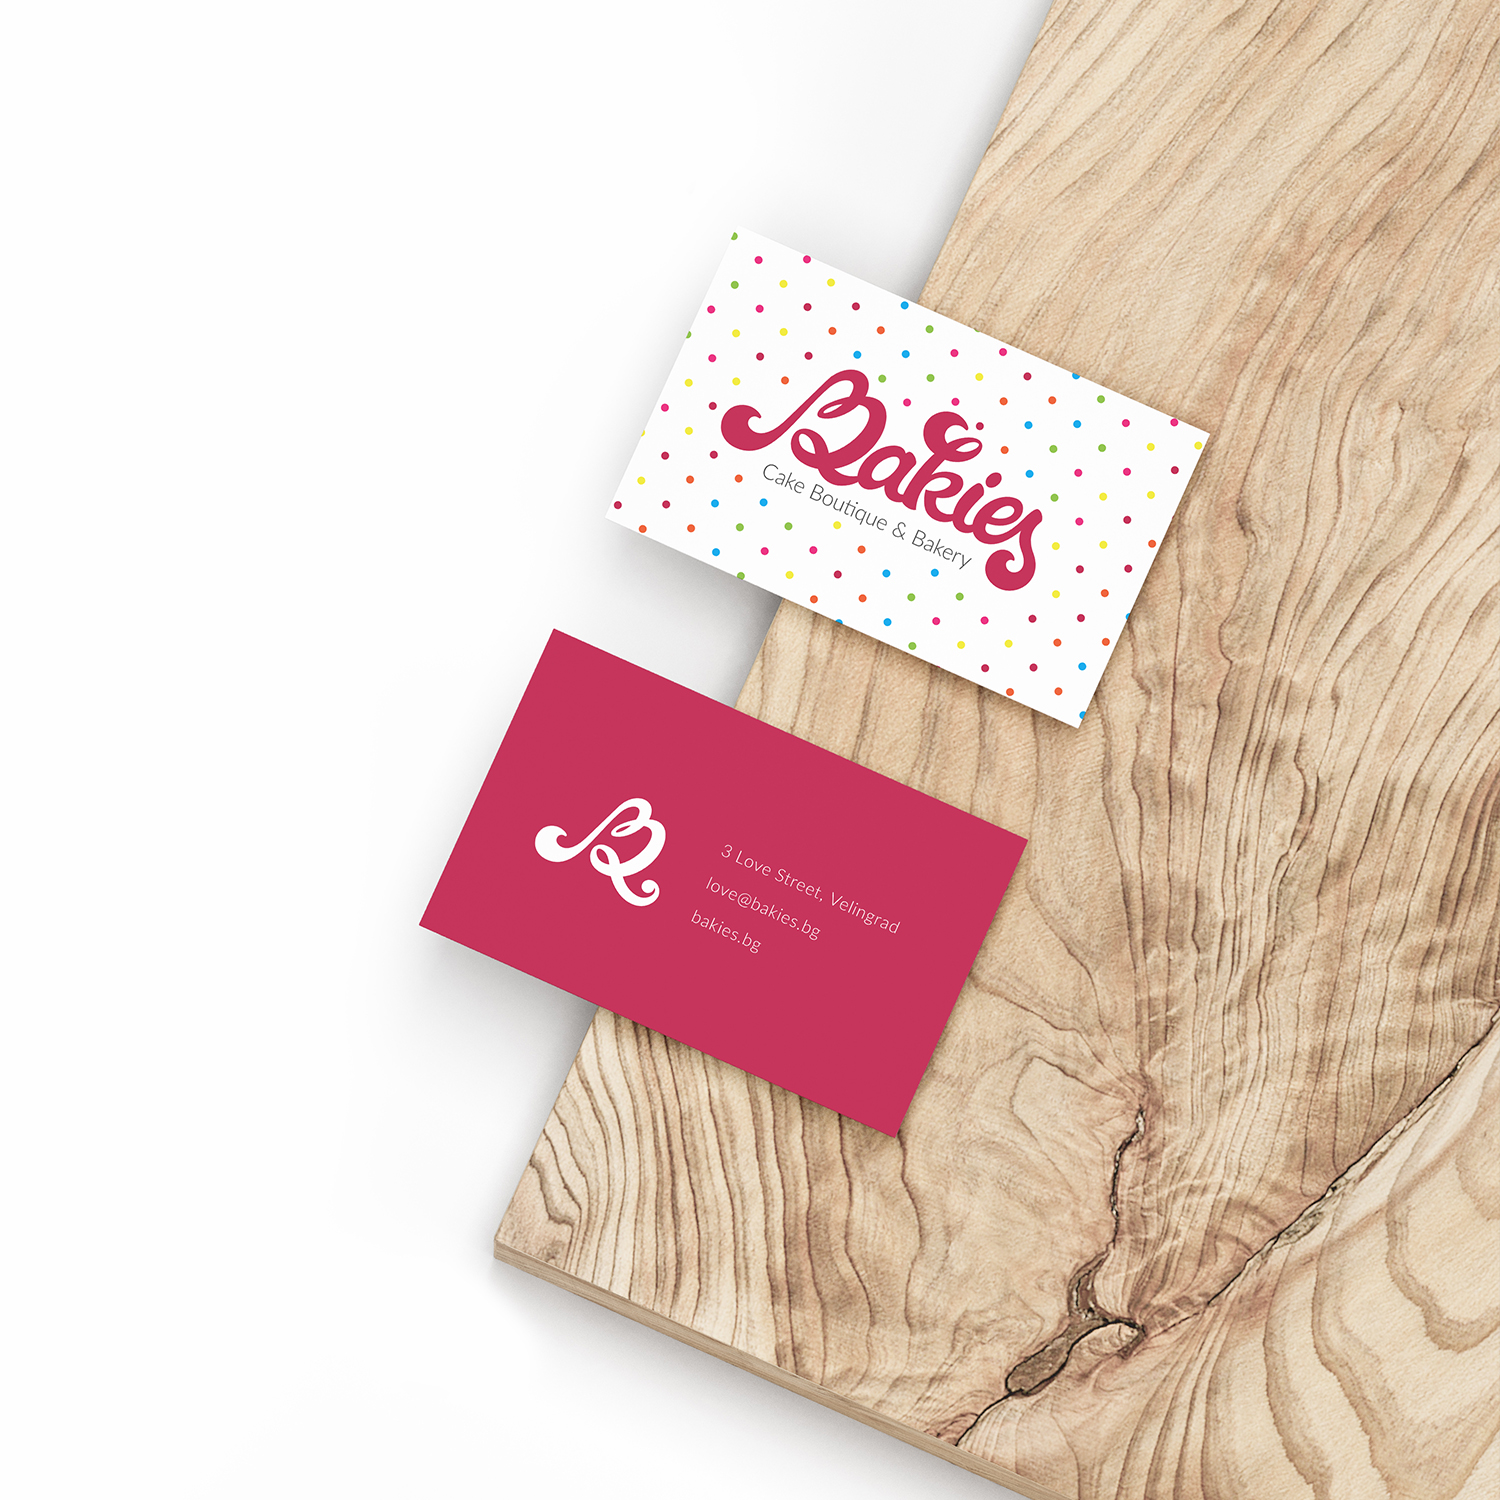 Boutique bakery visual identity